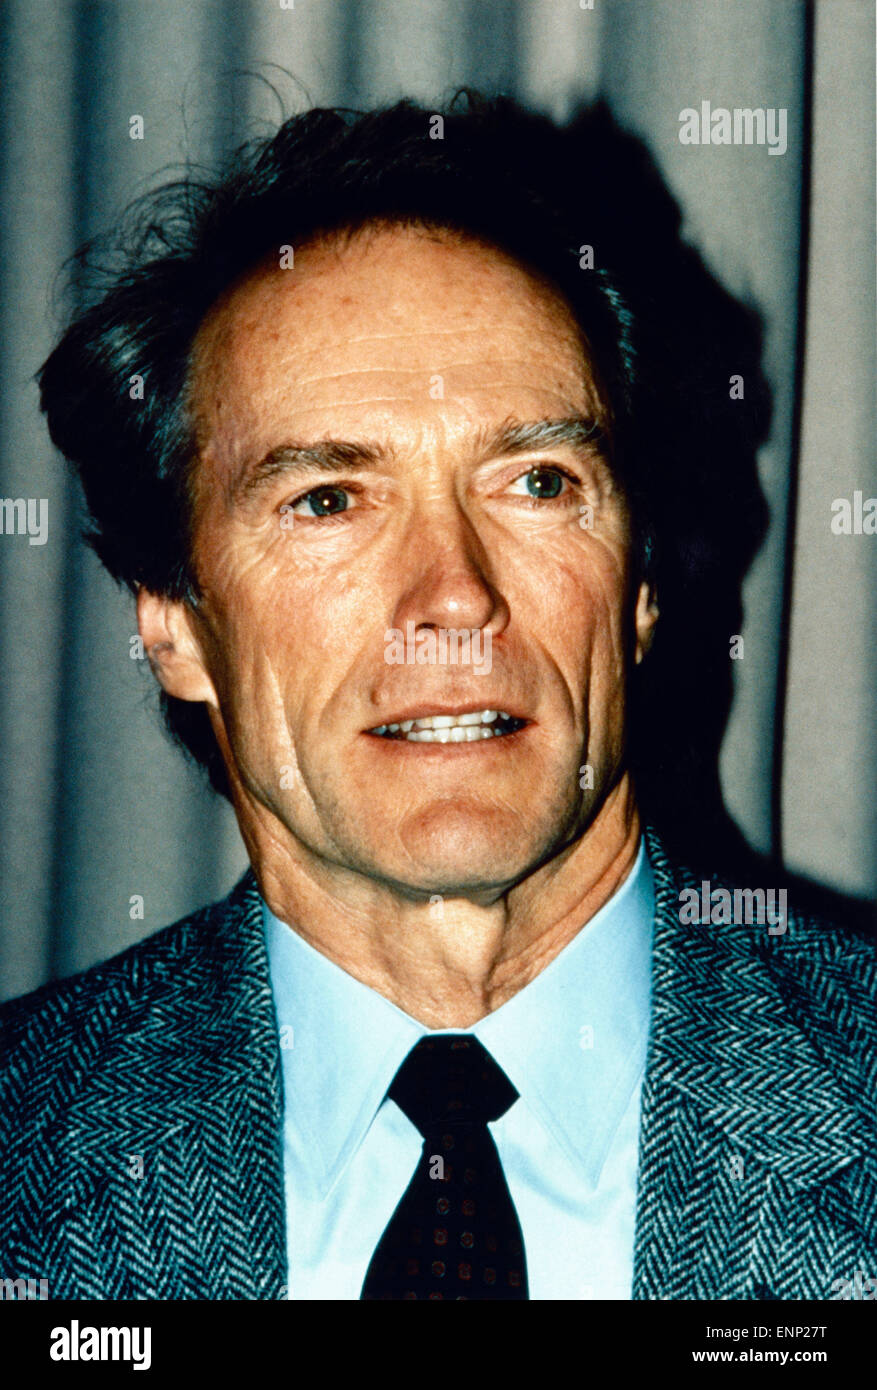 der us amerikanische schauspieler clint eastwood anfang 1980er stock photo royalty free image. Black Bedroom Furniture Sets. Home Design Ideas